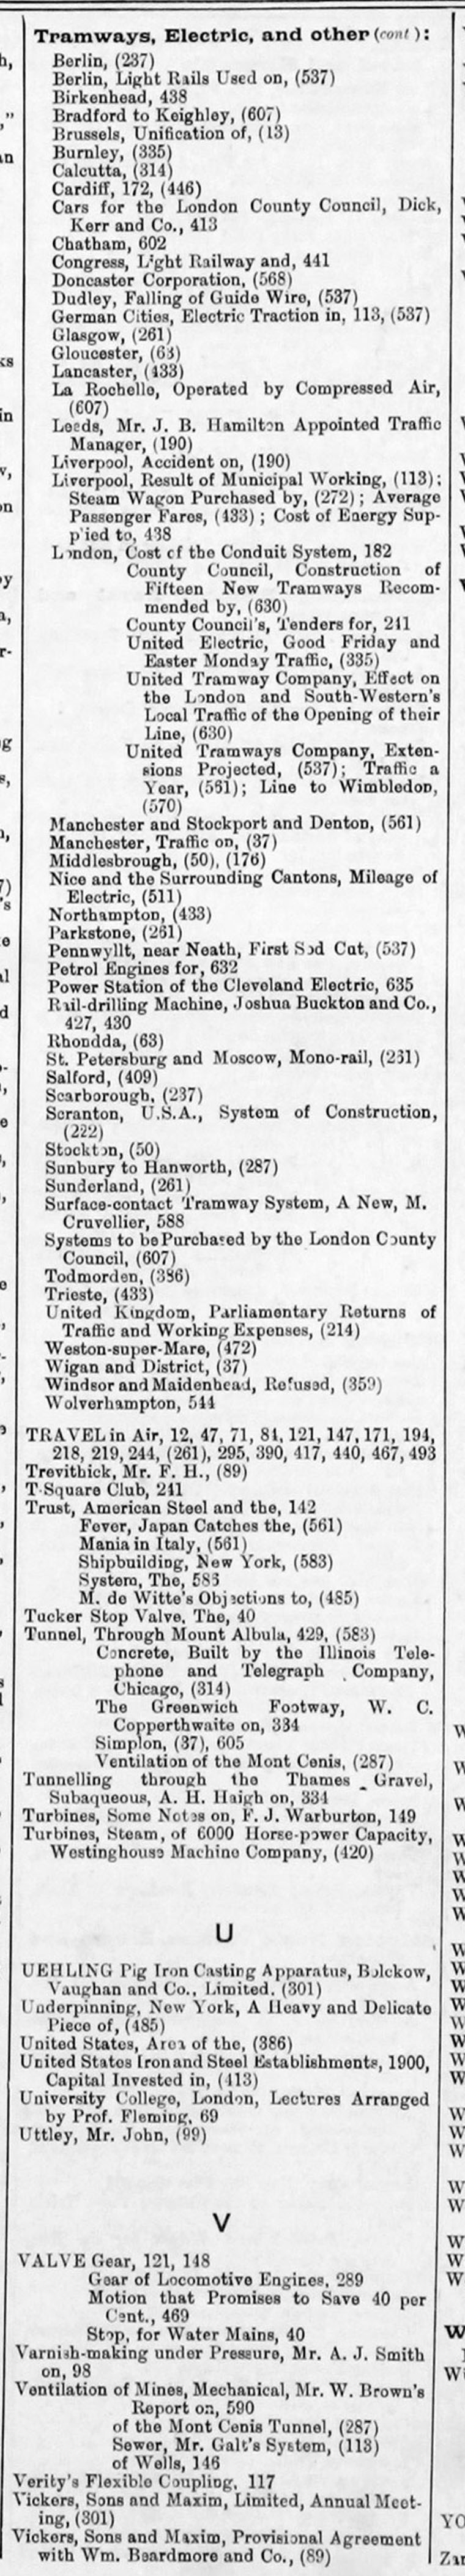 The Engineer 1902 Jan-Jun: Index: Miscellaneous - Graces Guide